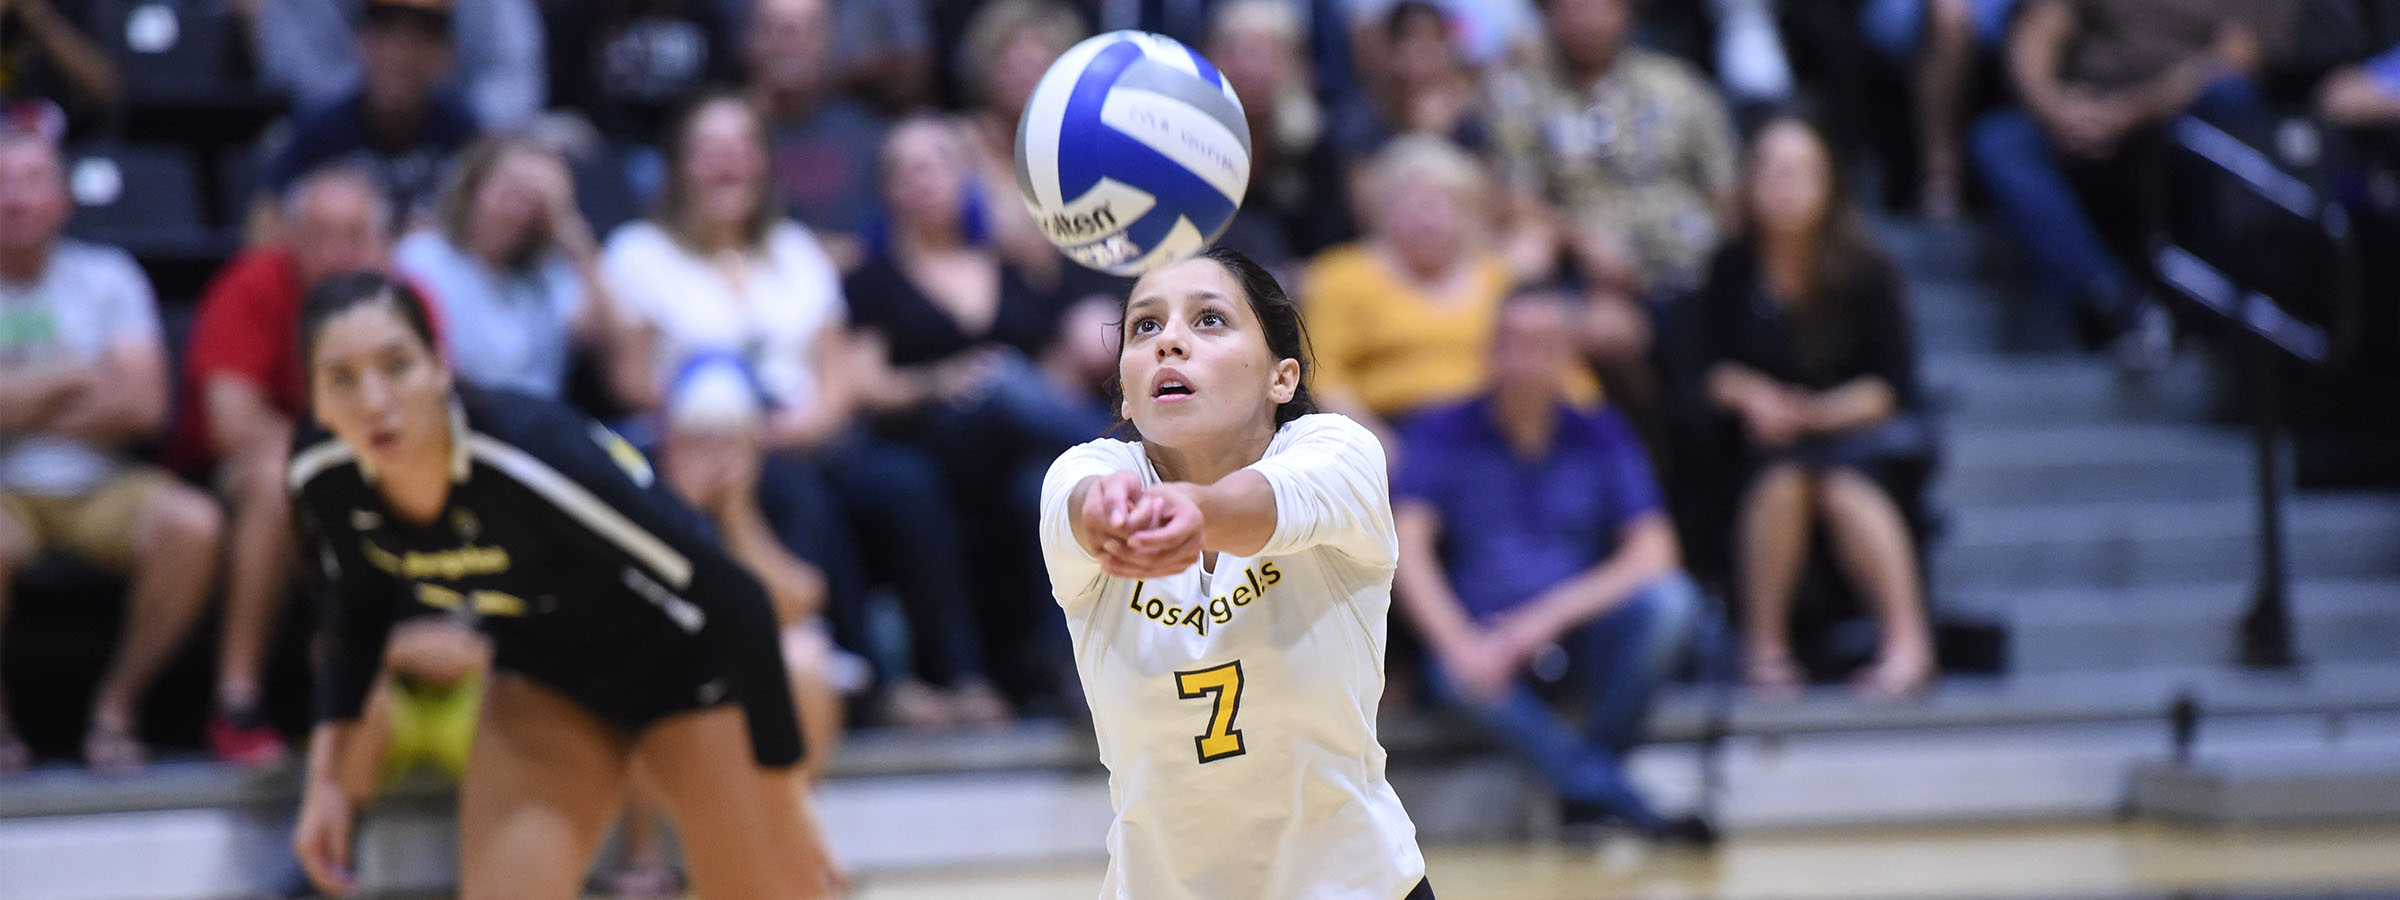 Volleyball player digging ball